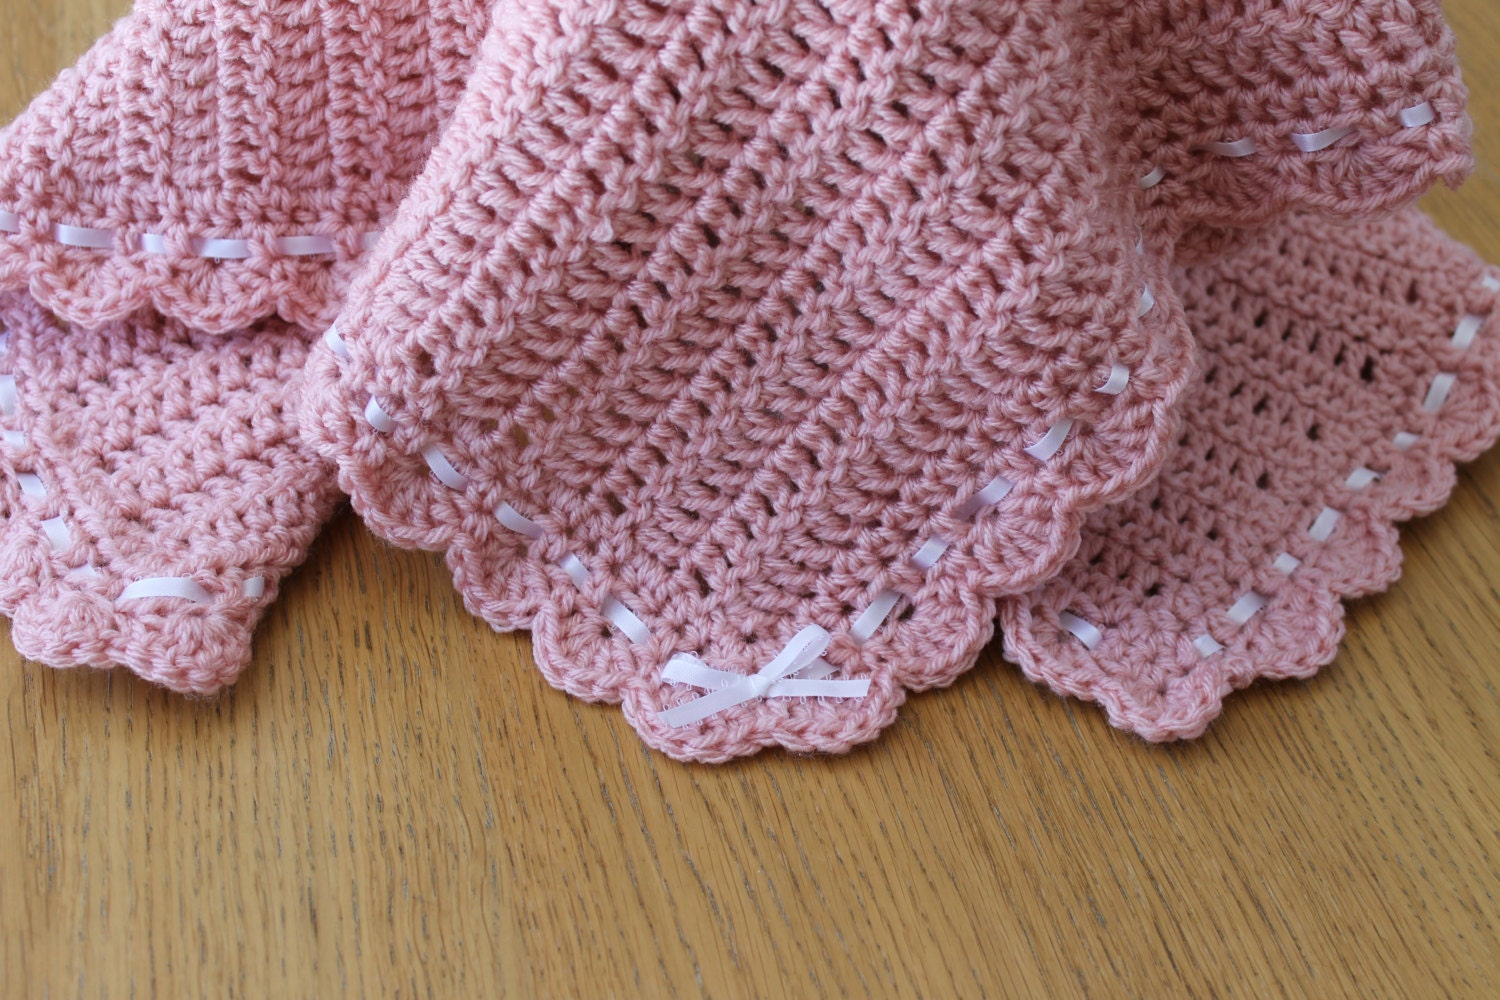 Crocheting Edges On Baby Blankets : Crochet Pink Baby Blanket/Afghan with Shell Edging by KirstsKorner